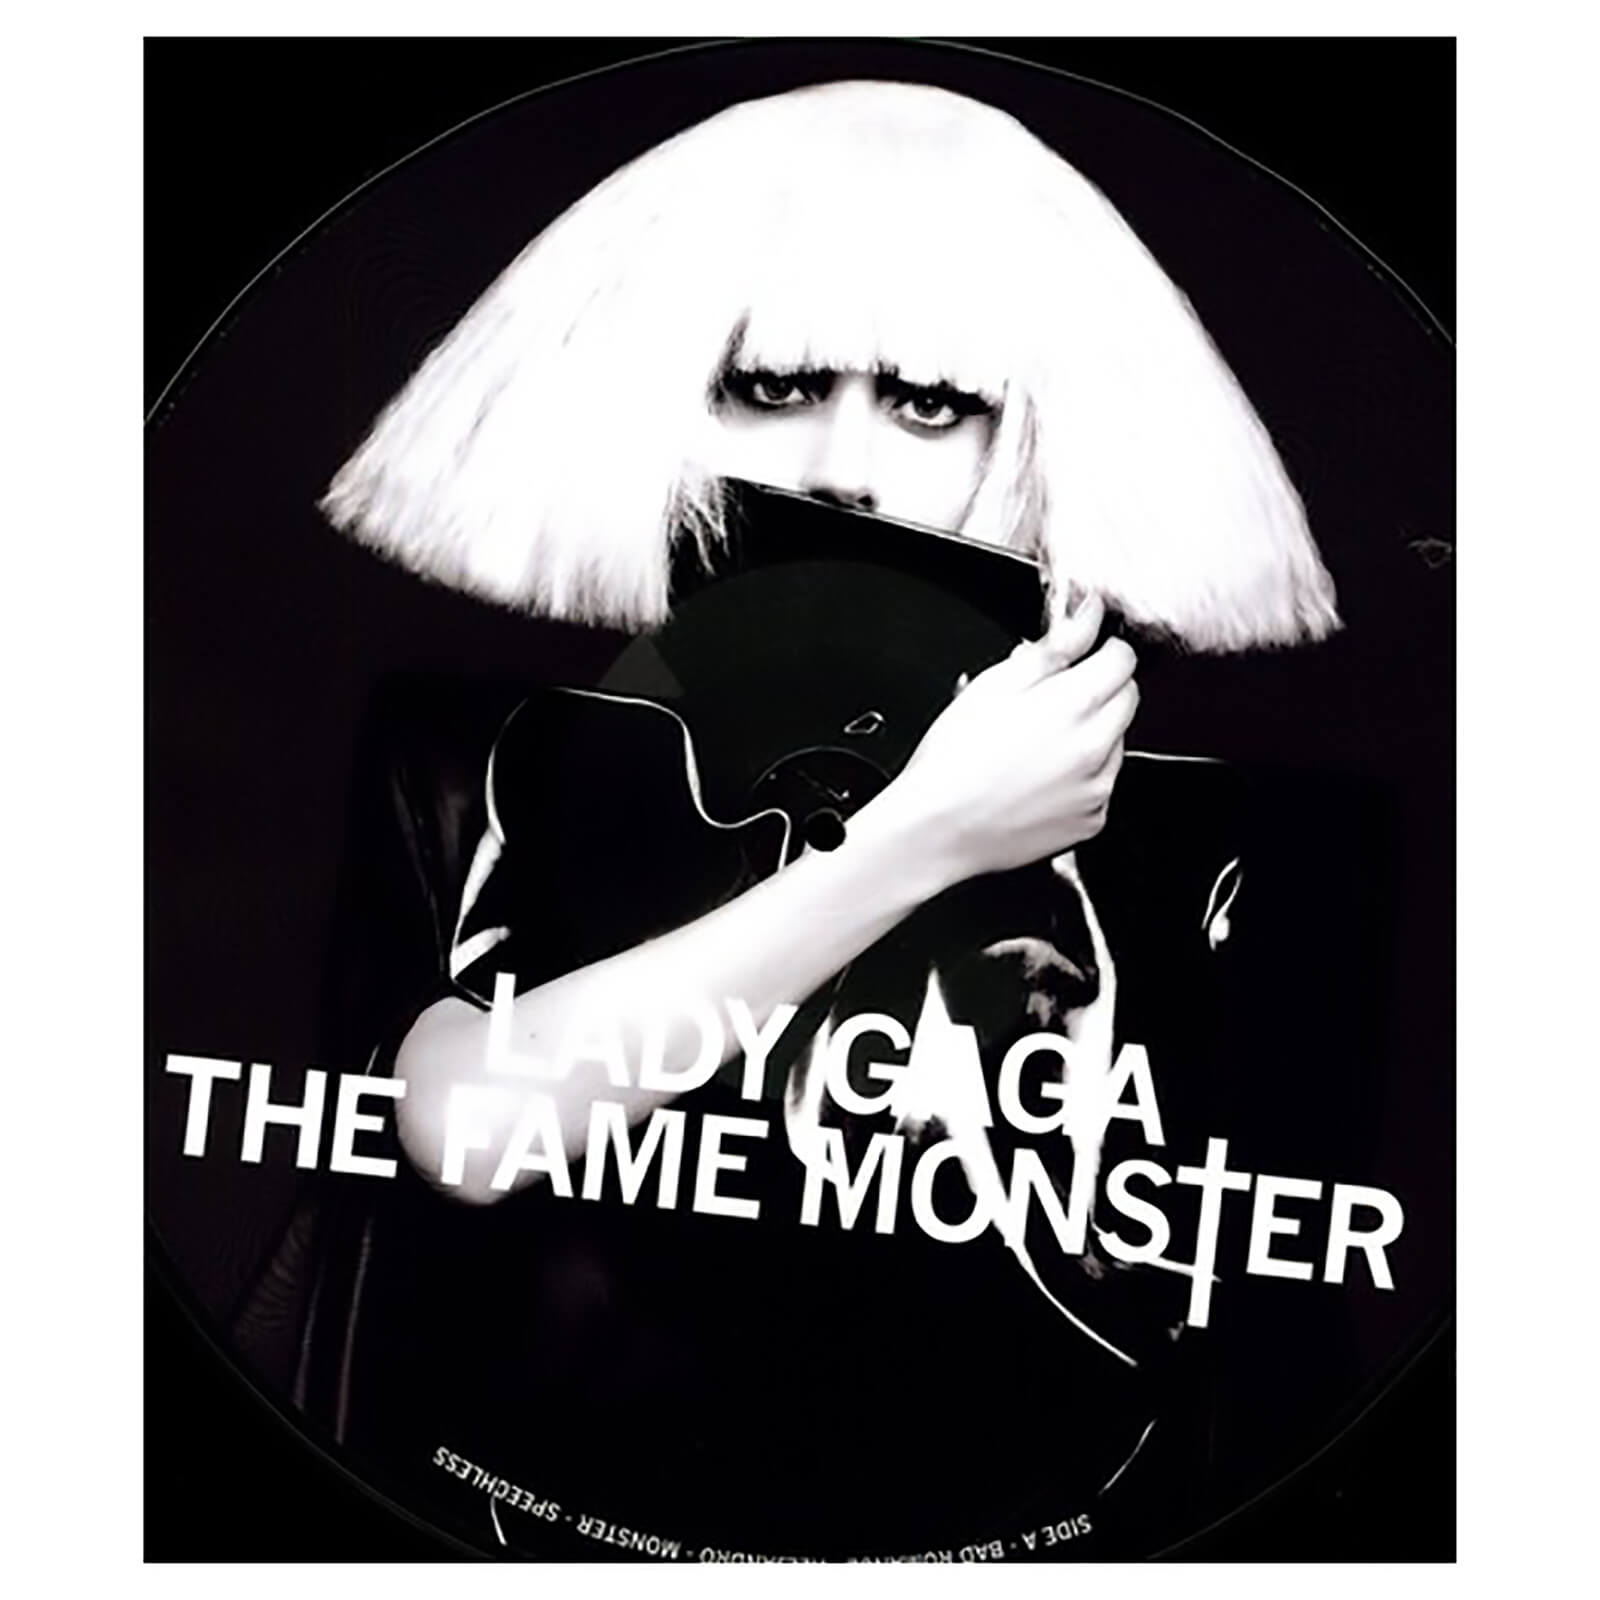 Lady Gaga - Fame Monster (Picture Disc) - Vinyl